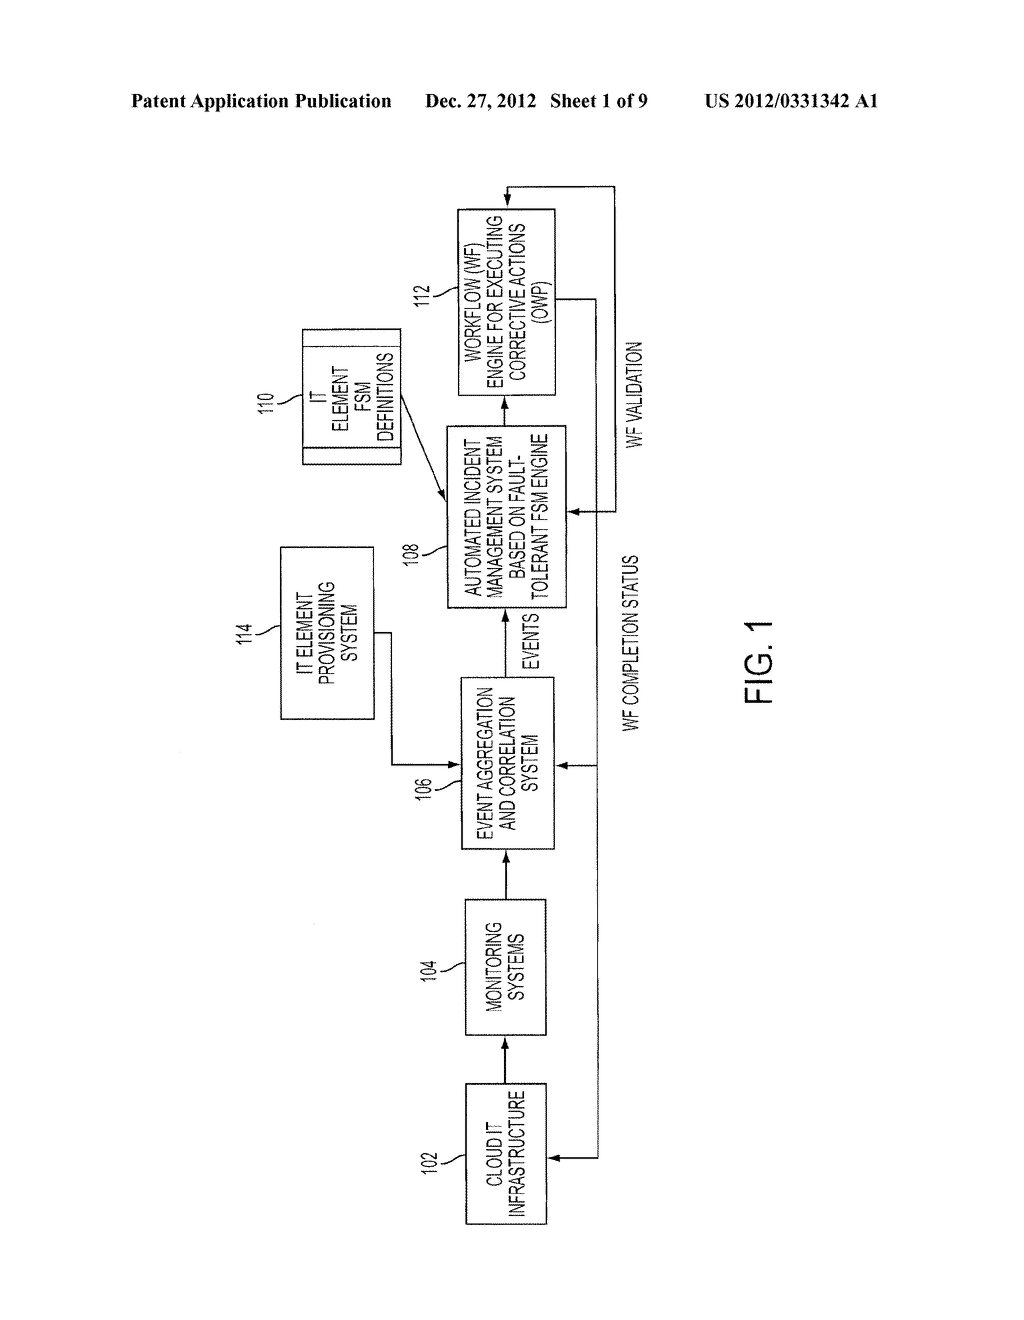 Adding Scalability And Fault Tolerance To Generic Finite State Engine Diagram Machine Frameworks For Use In Automated Incident Management Of Cloud Computing Infrastructures Schematic Image 02